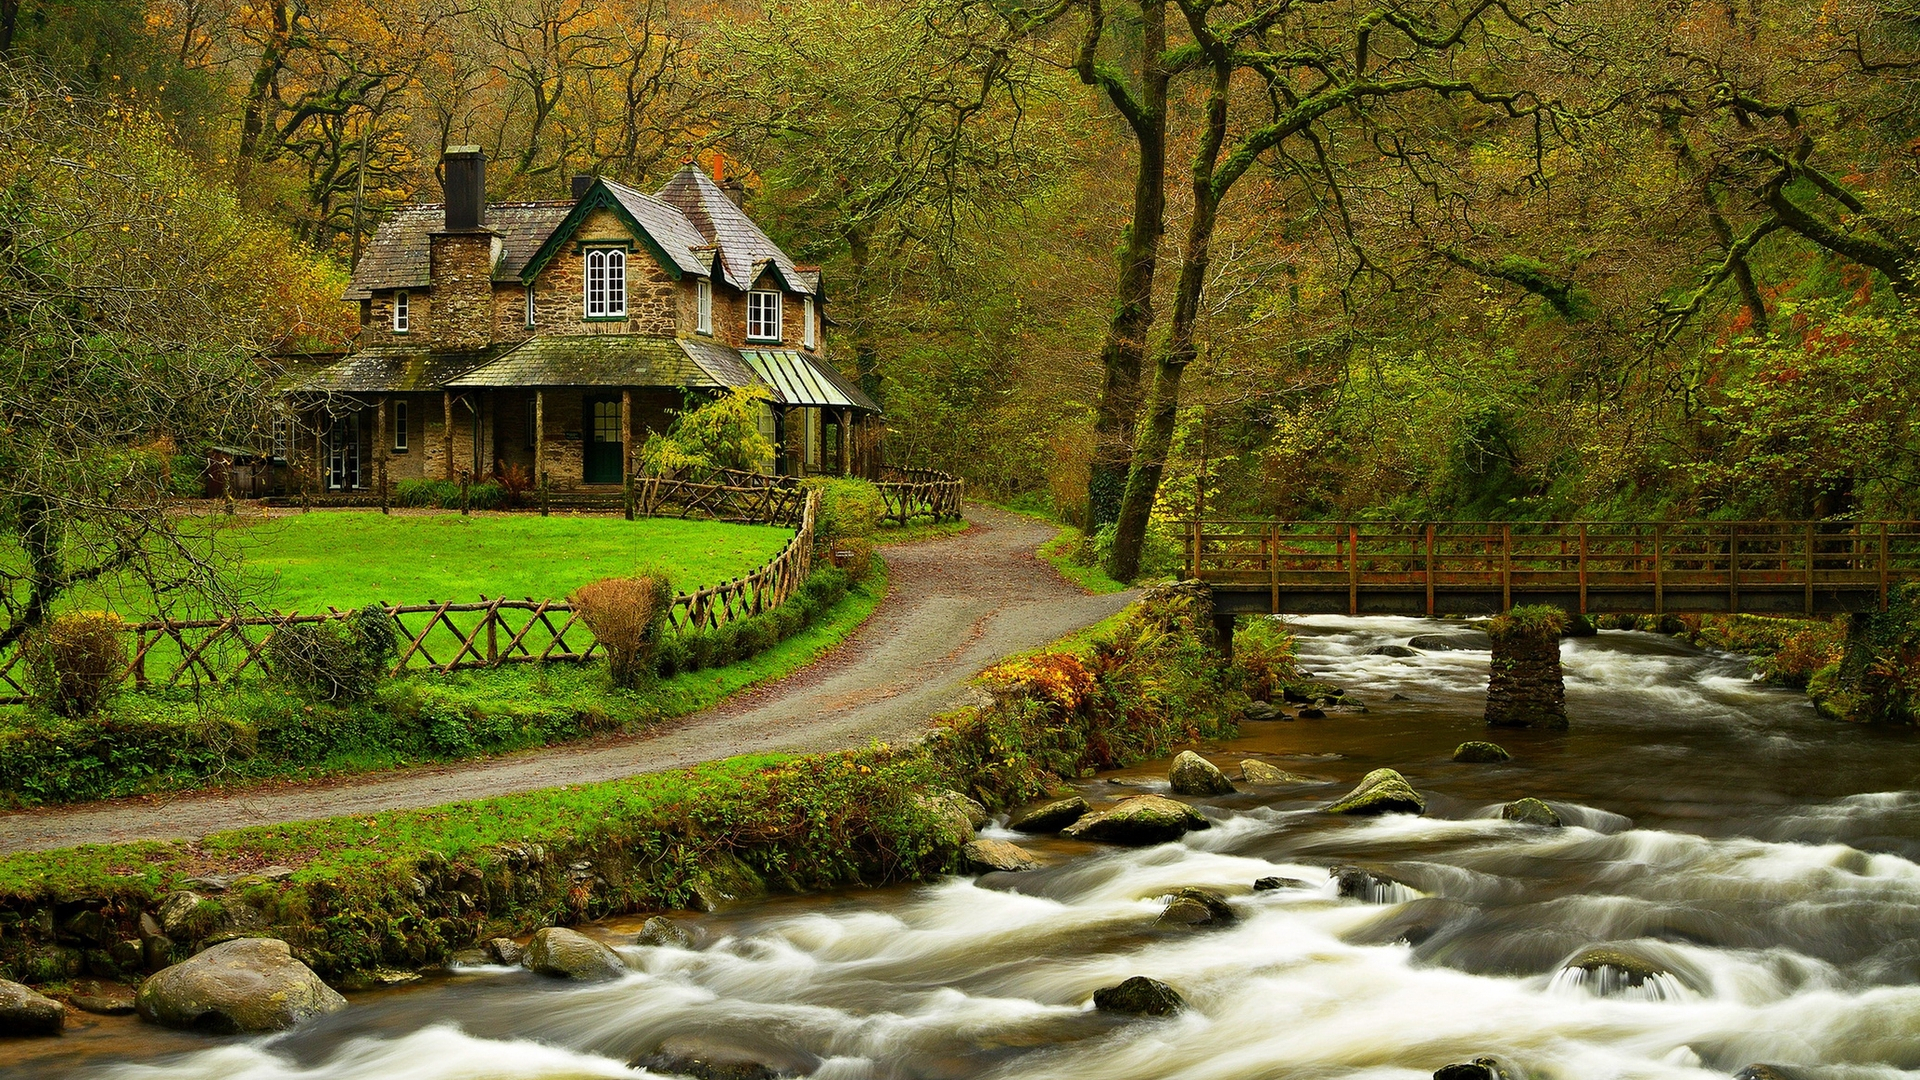 Free Download Wallpaper House In The Woods Hd Wallpaper Expert